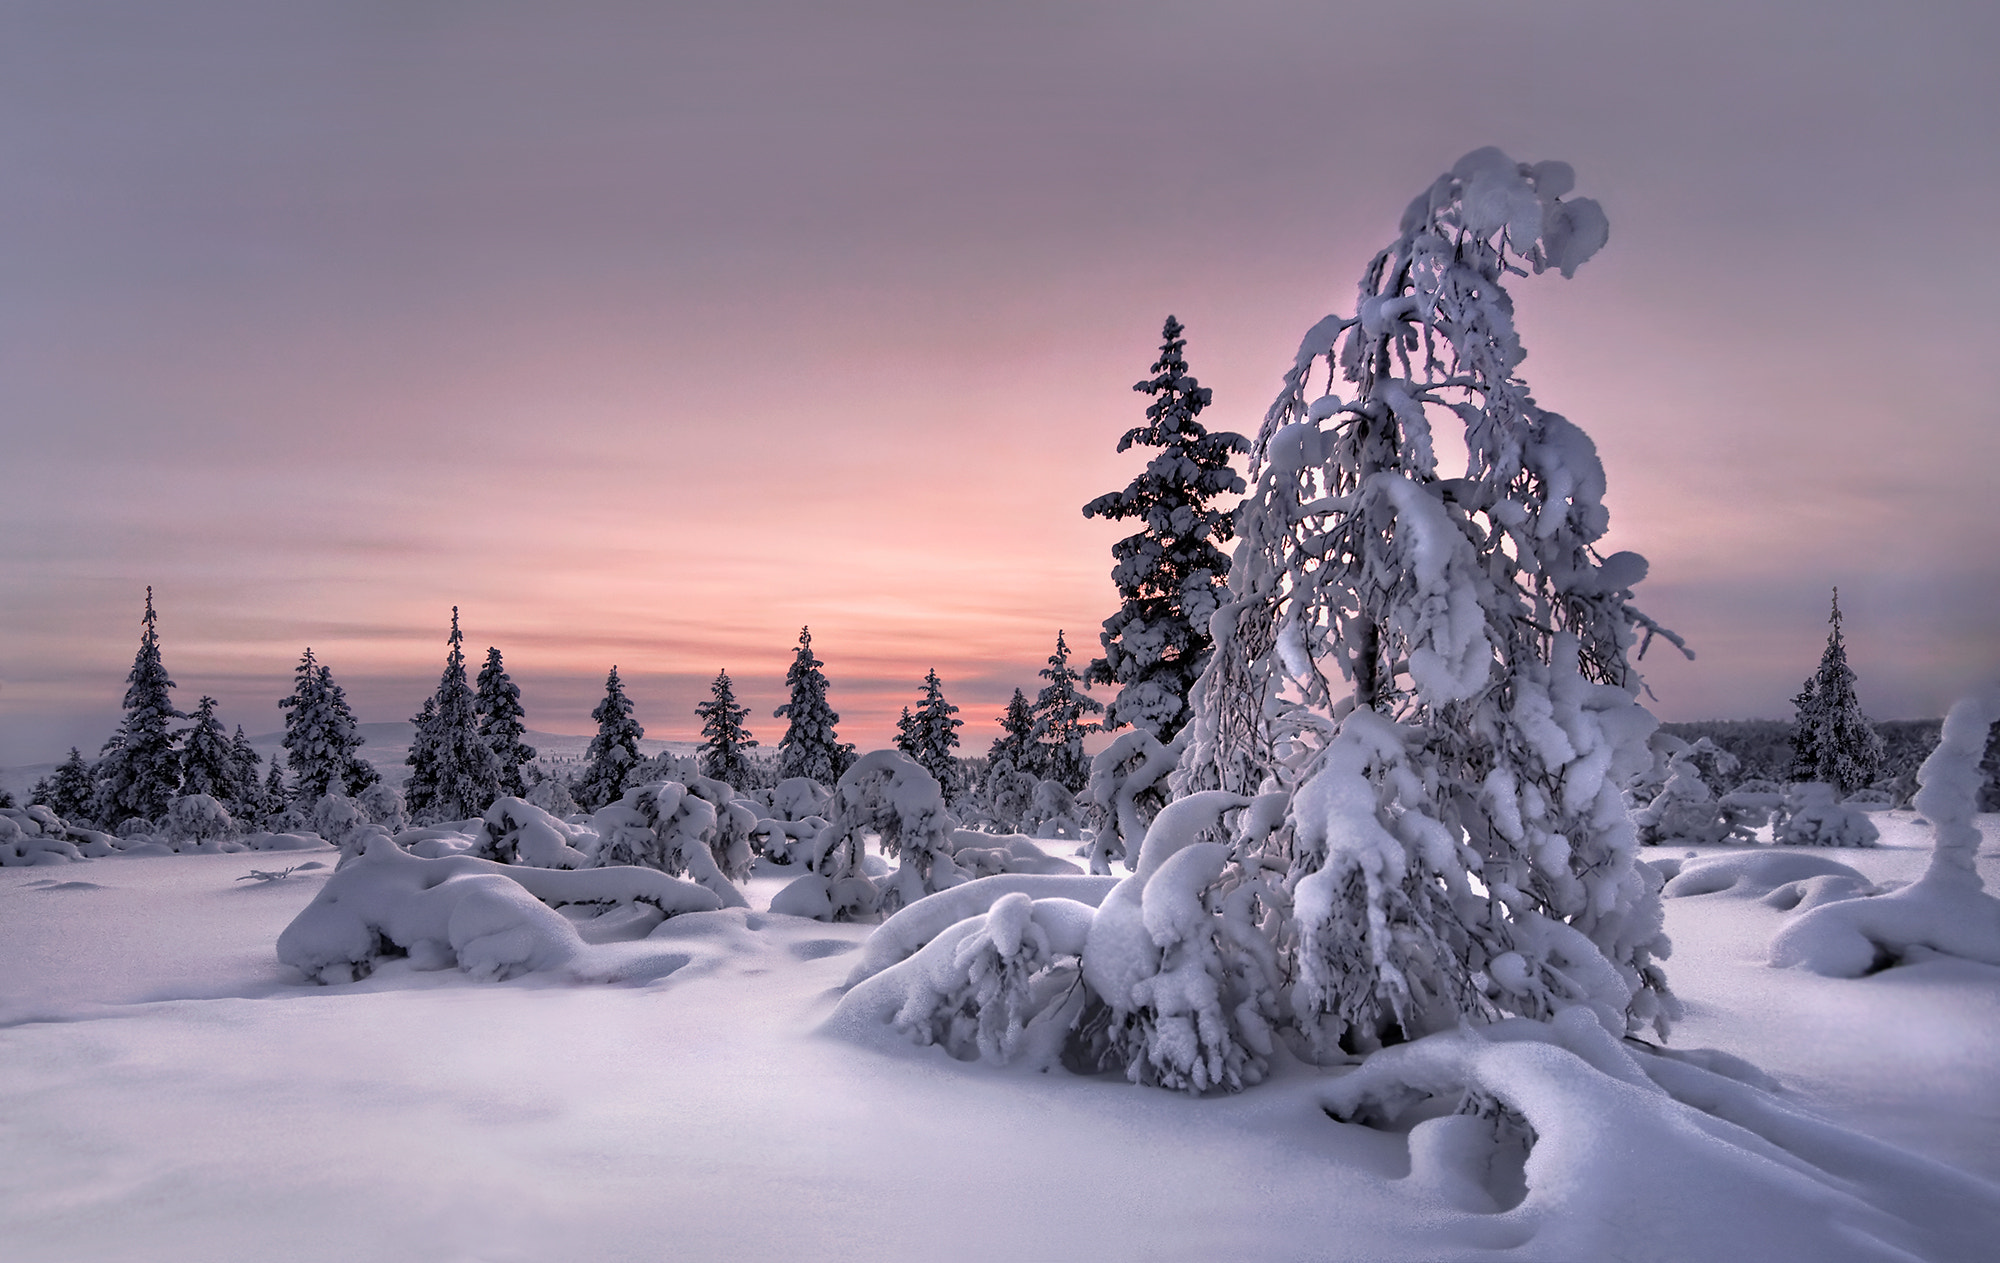 Photograph Lappland - Winterwonderland by Christian Schweiger on 500px